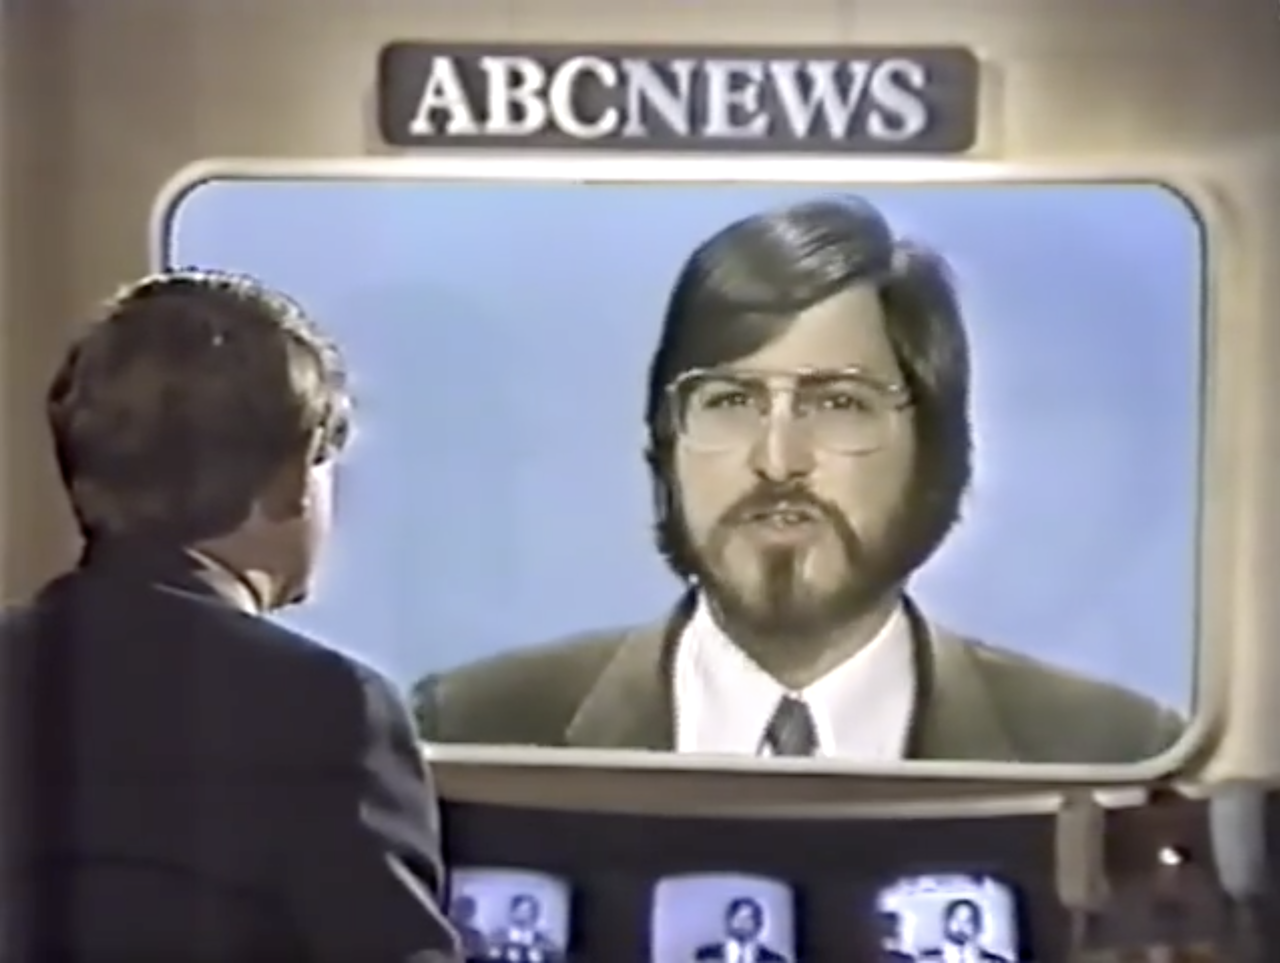 Watch Steve Jobs Assure People In 1981 That Computers Wouldn't Be A Privacy Nightmare